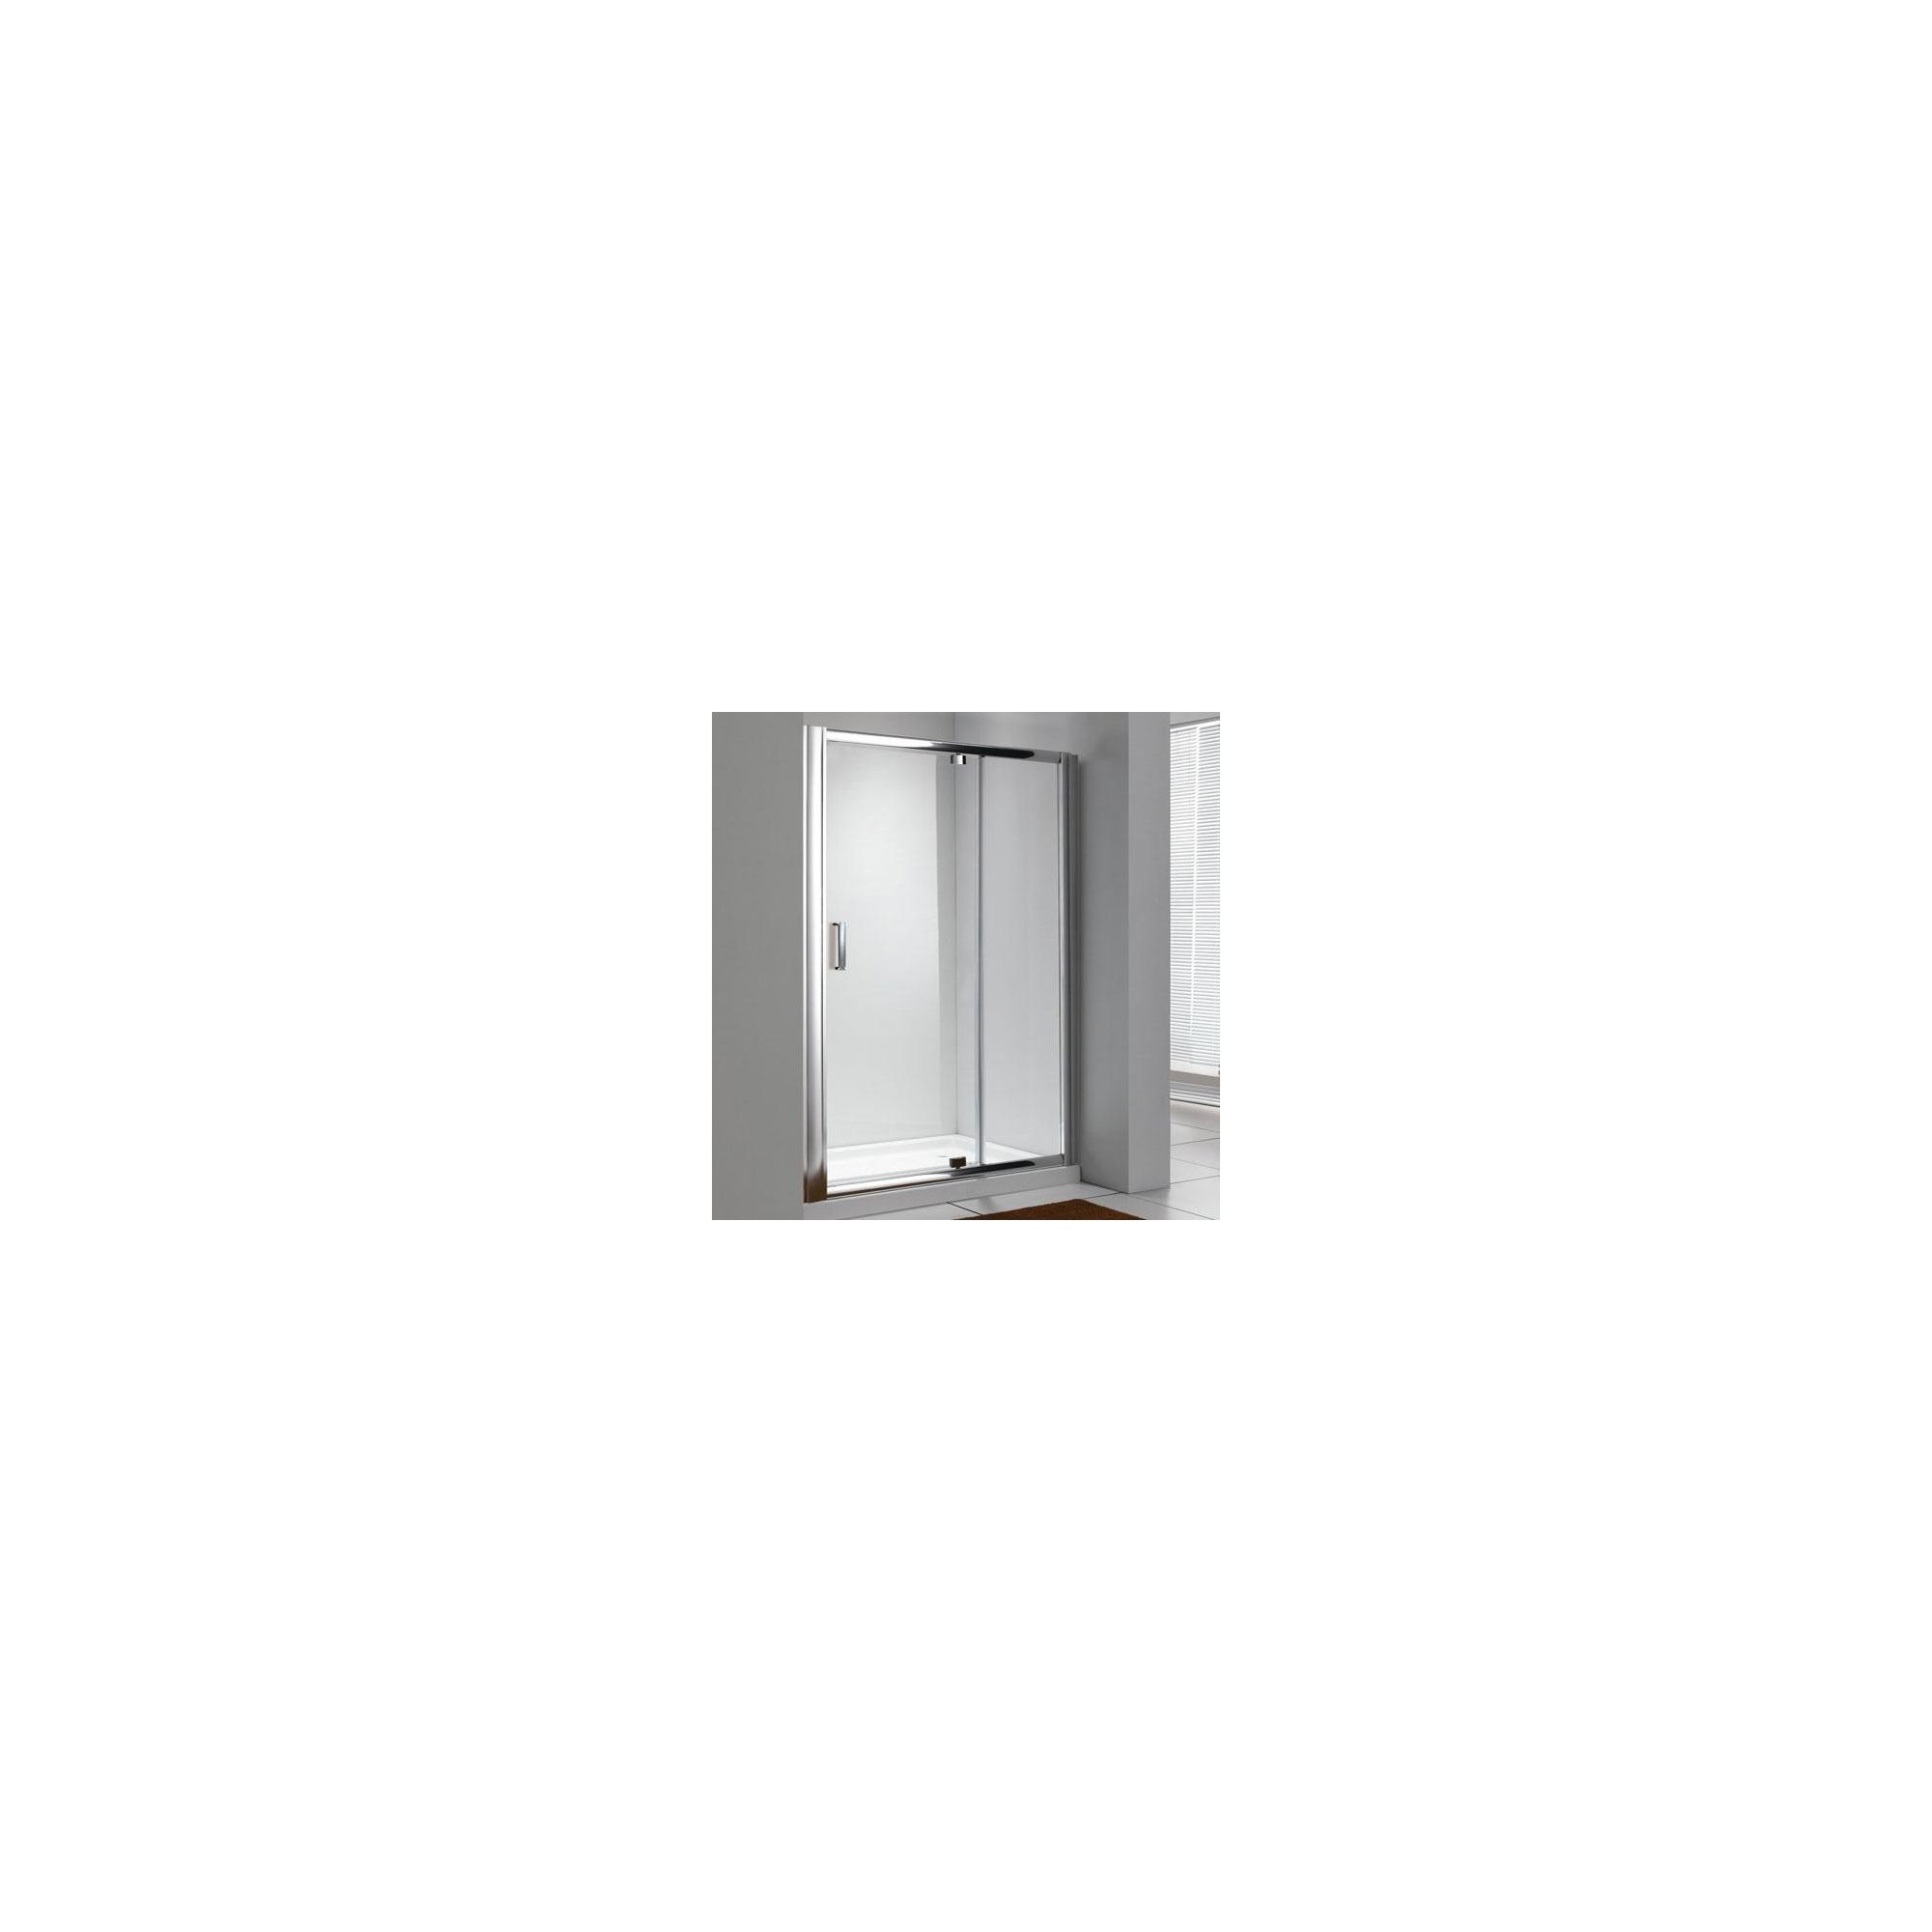 Duchy Style Pivot Door Shower Enclosure, 1100mm x 700mm, 6mm Glass, Low Profile Tray at Tesco Direct